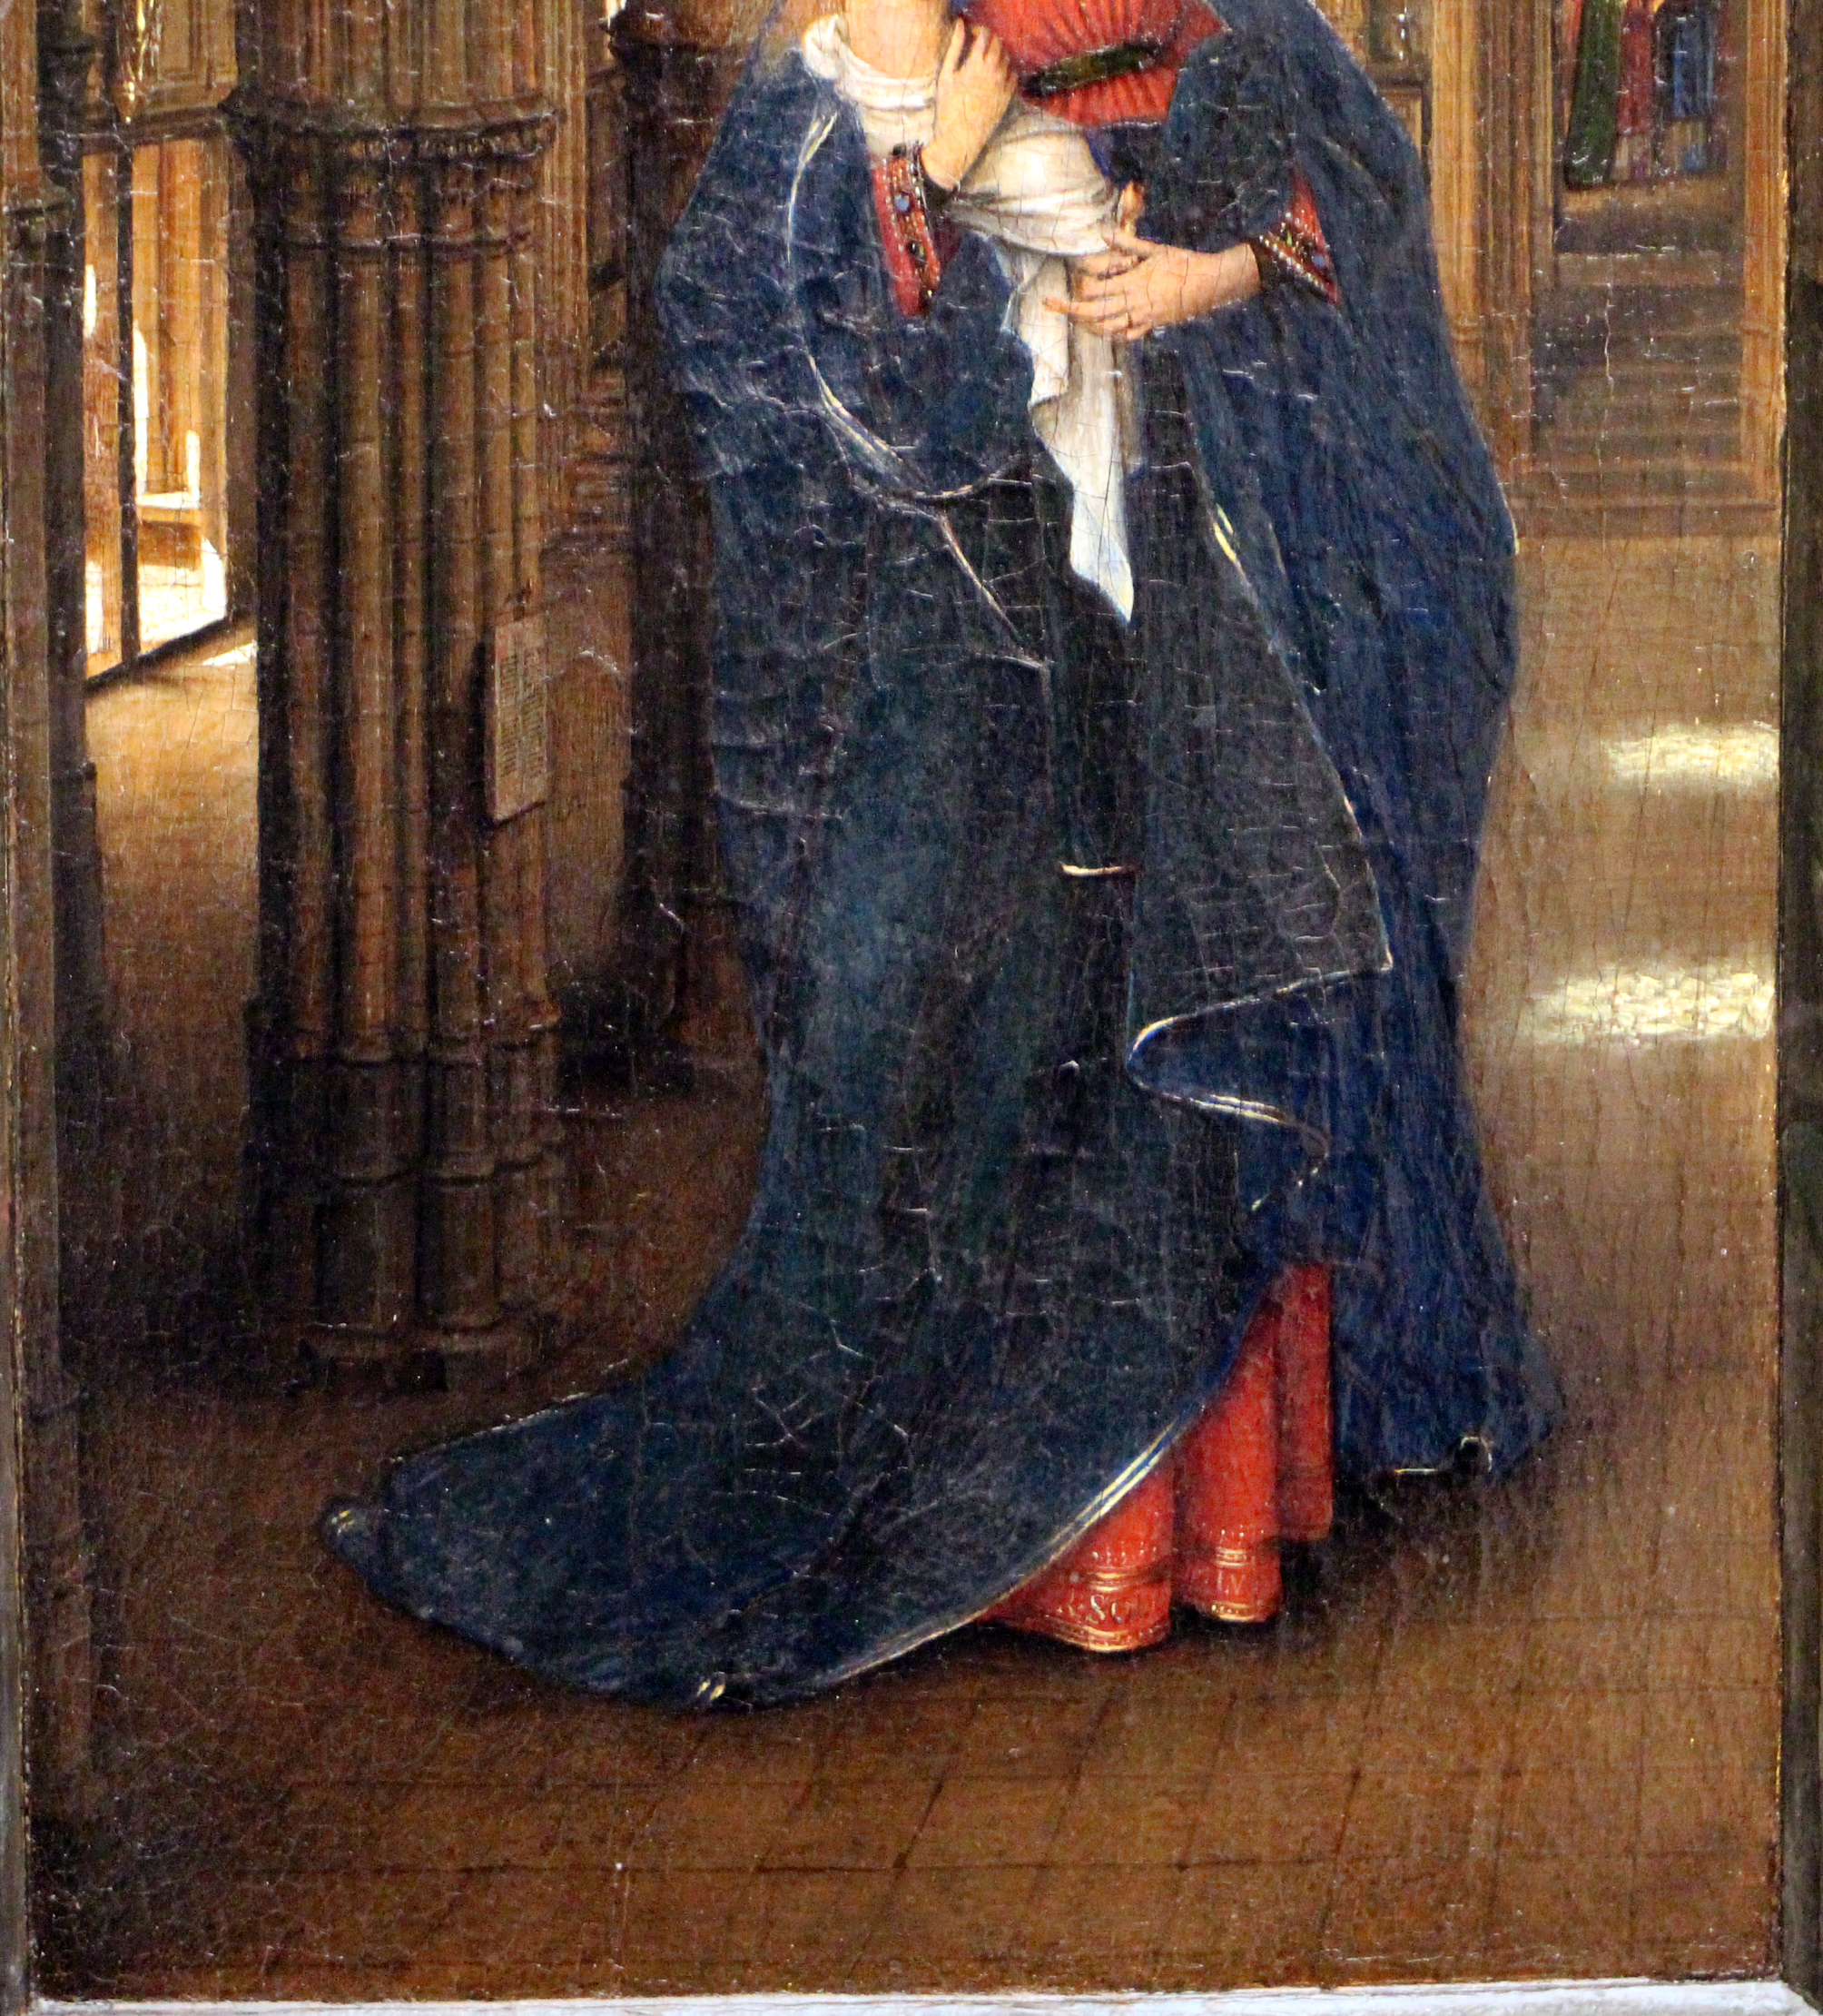 an analysis of the oil painting madonna in a church by jan van eyck Framed print fine art the madonna in the church - oil by jan van eyck , painting copy fine art the madonna in the church - oil by jan van eyck.